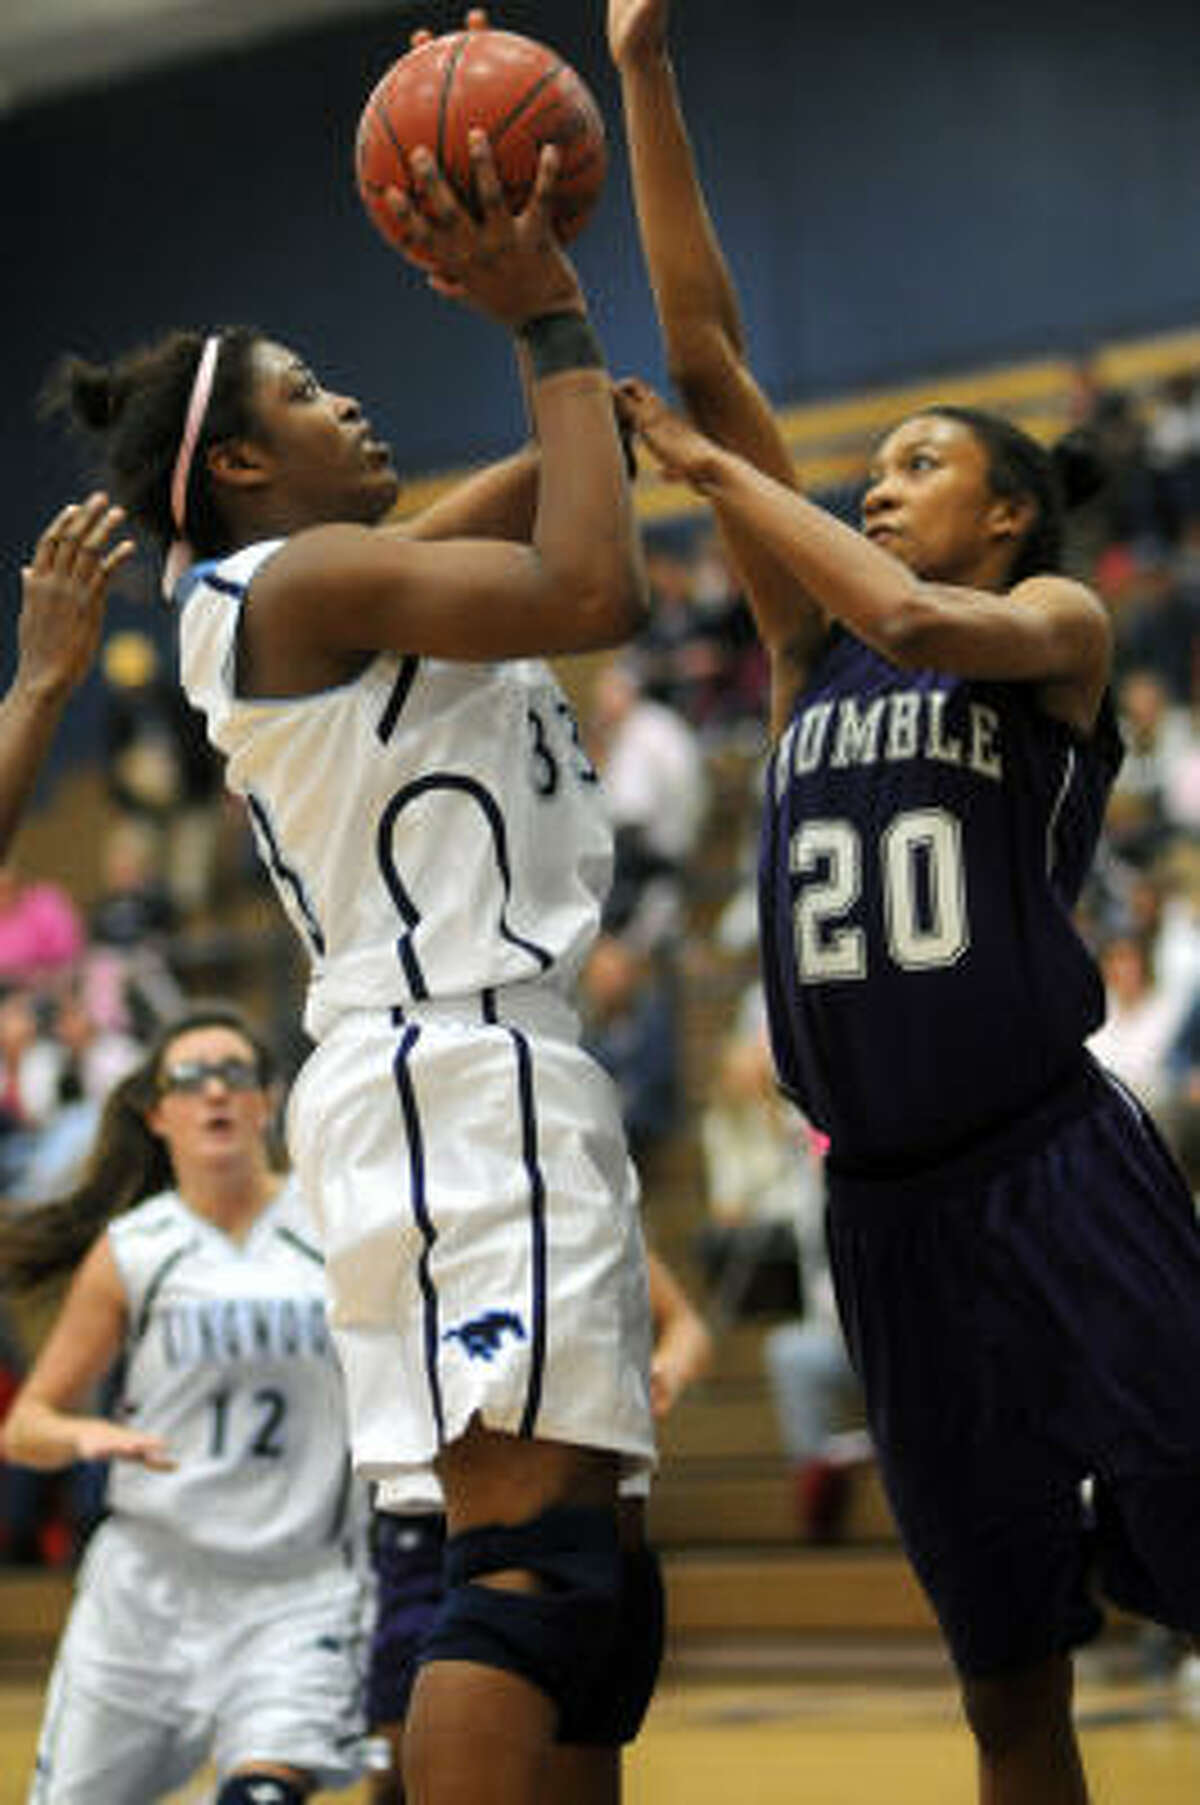 Humble junior Brenea White, right, goes up for a block against Kingwood's senior Michelle Price.